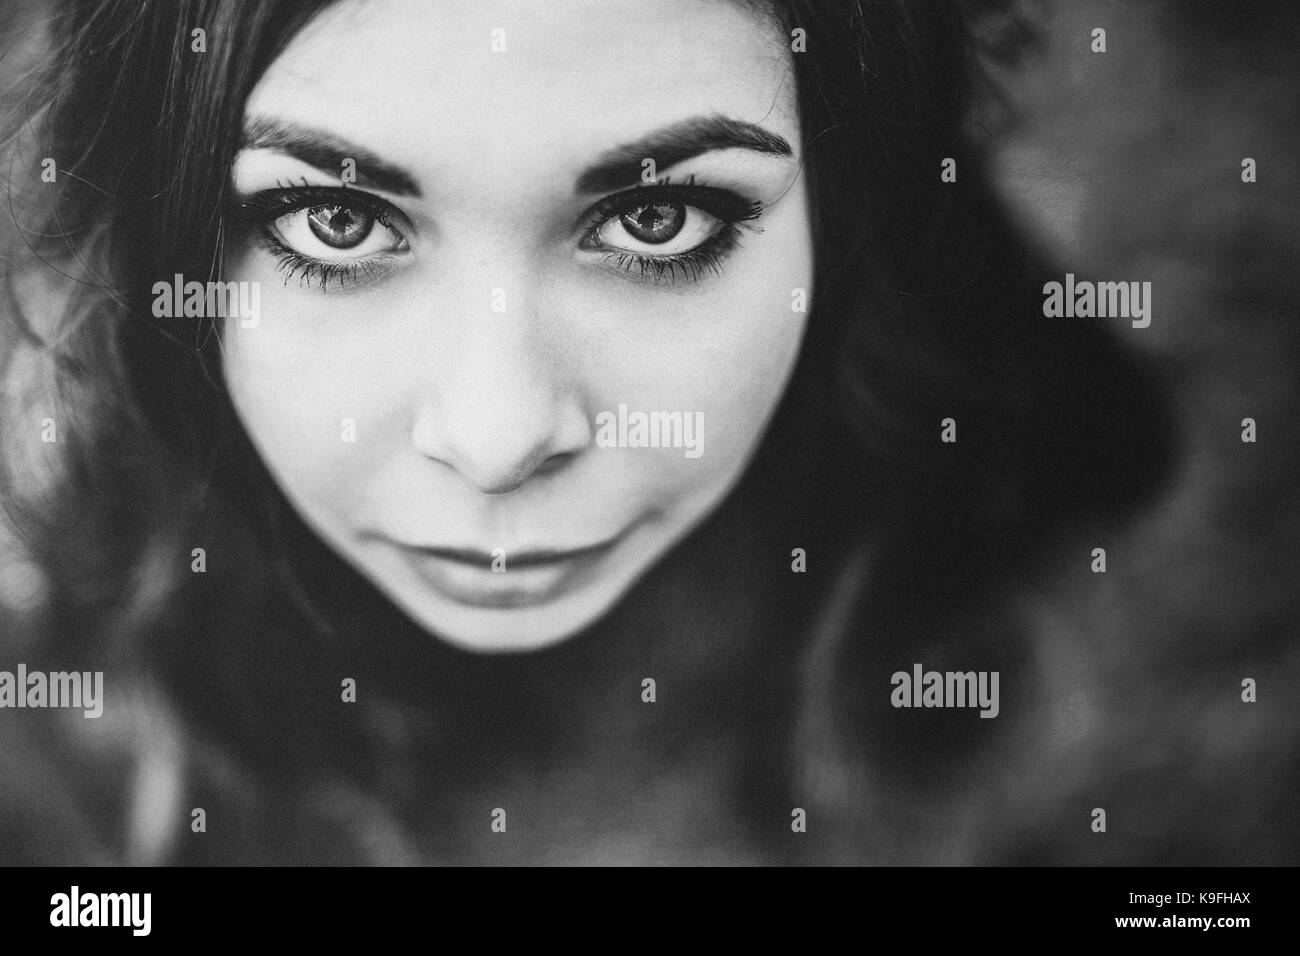 Black and white close up portrait - Stock Image